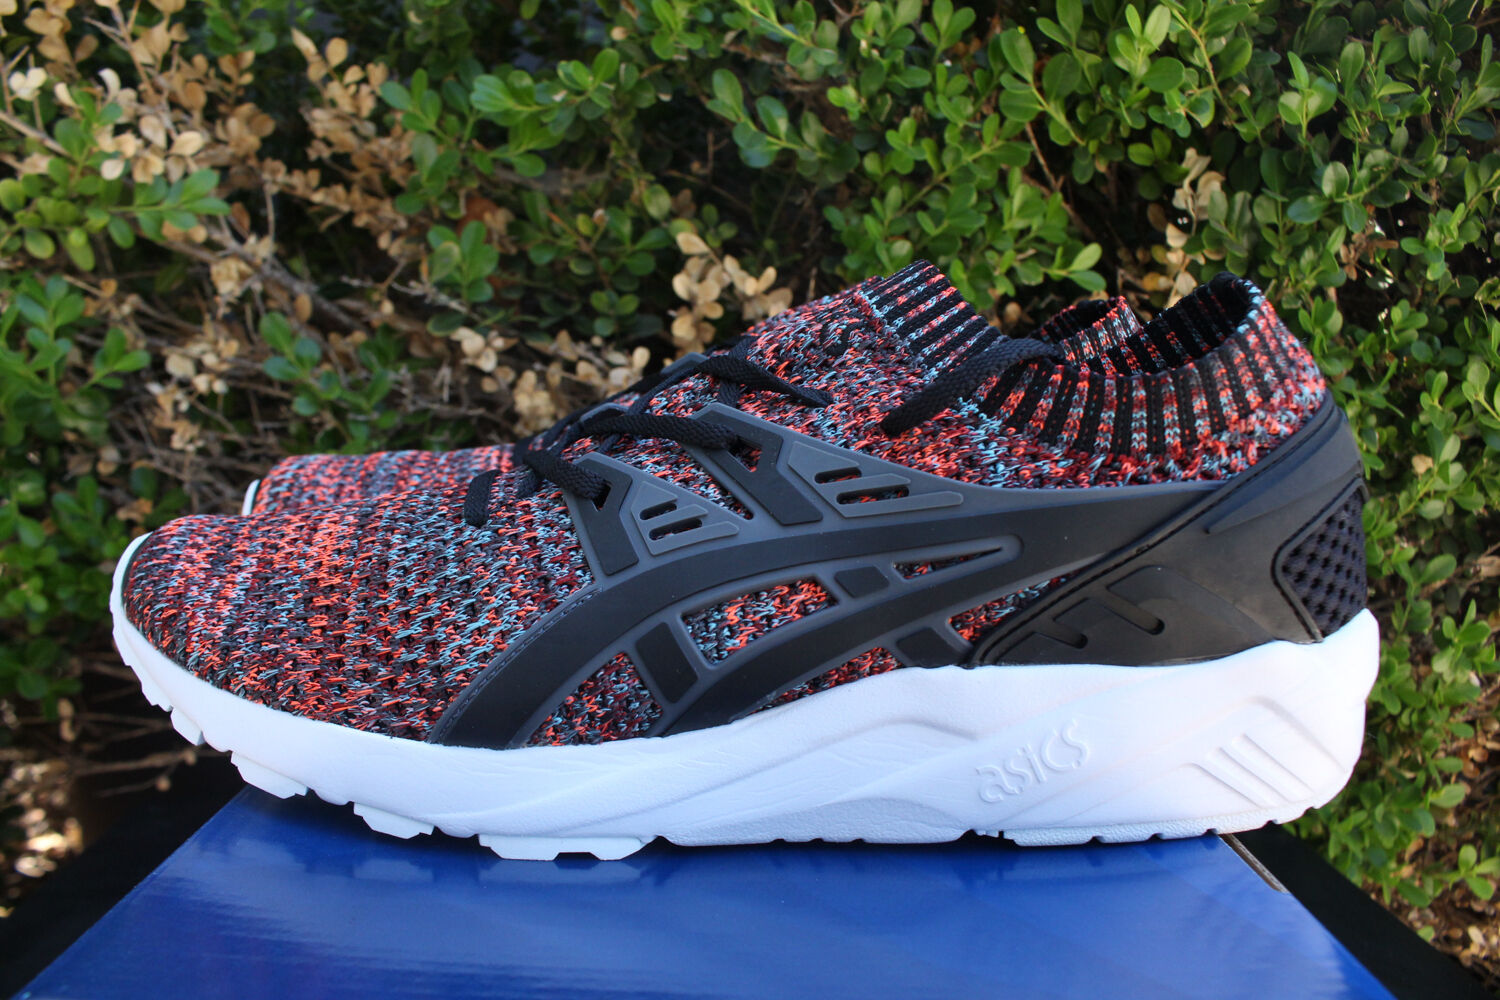 ASICS GEL KAYANO TRAINER KNIT SZ 12 CARBON BLACK HN7M4 9790